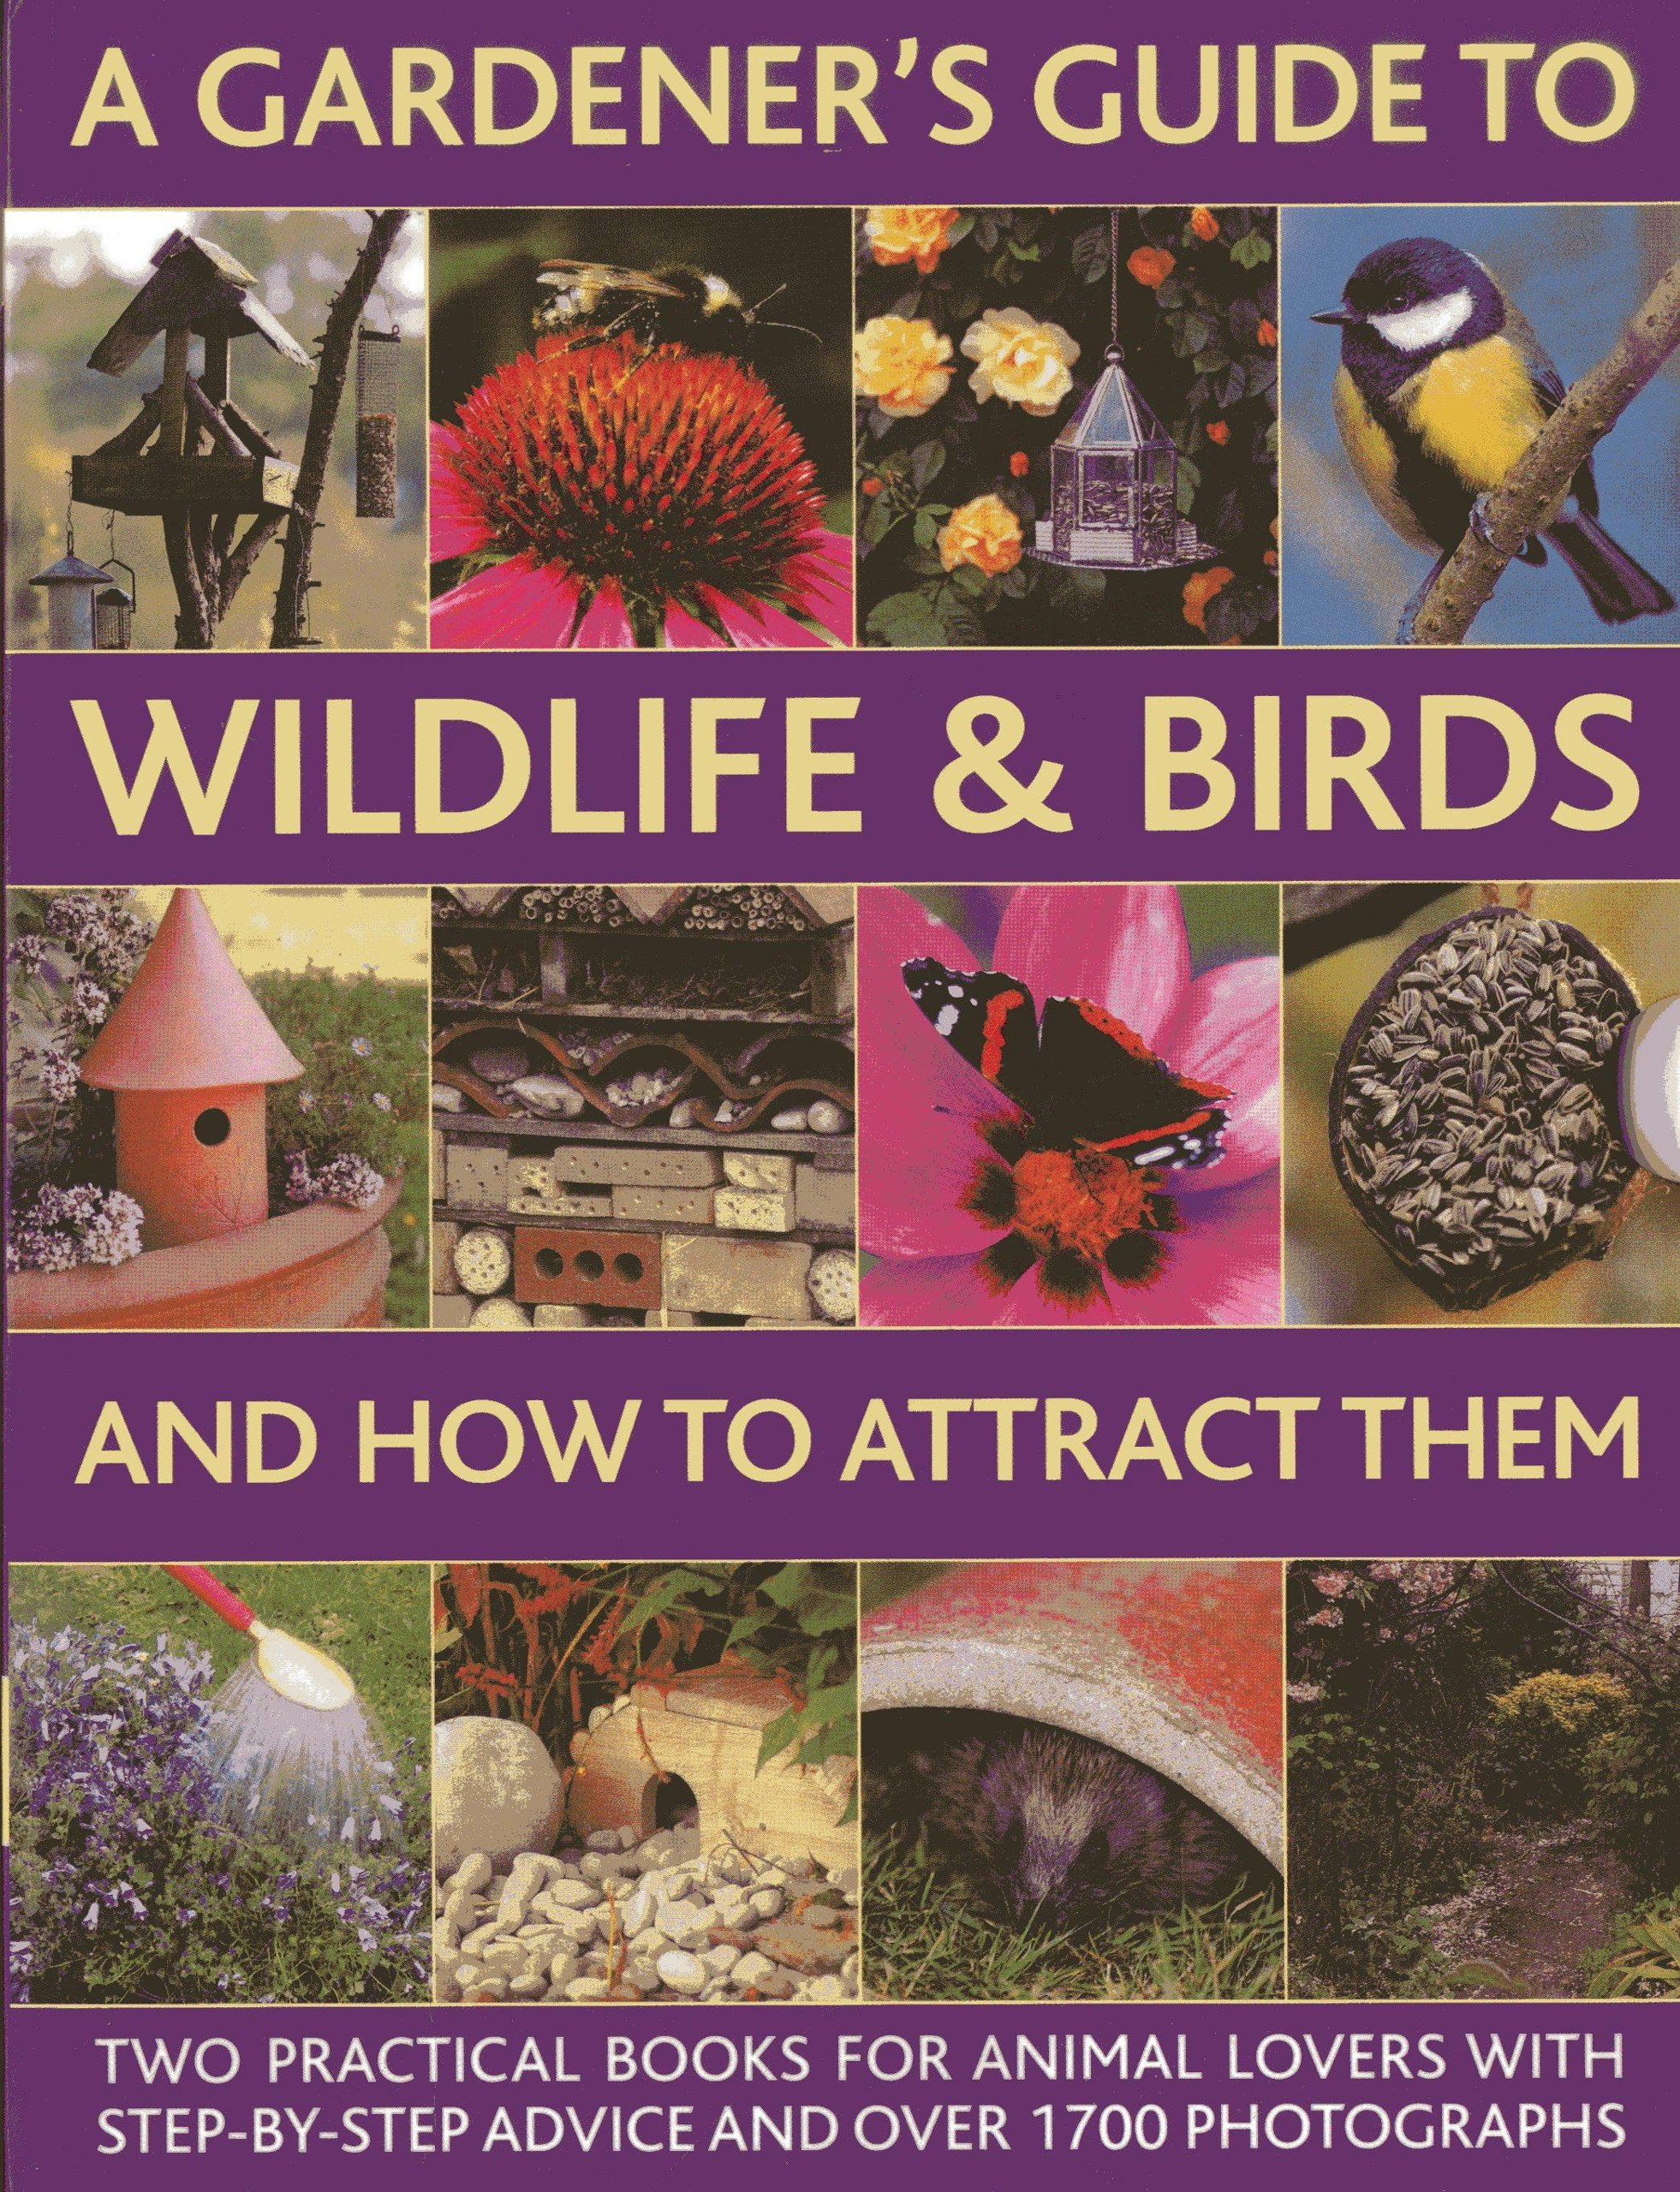 A Gardener's Guide To Wildlife & Birds And How To Attract Them: Two Practical Books For Animal Lovers With Step-by-step Advice And Over 1700 Photographs pdf epub